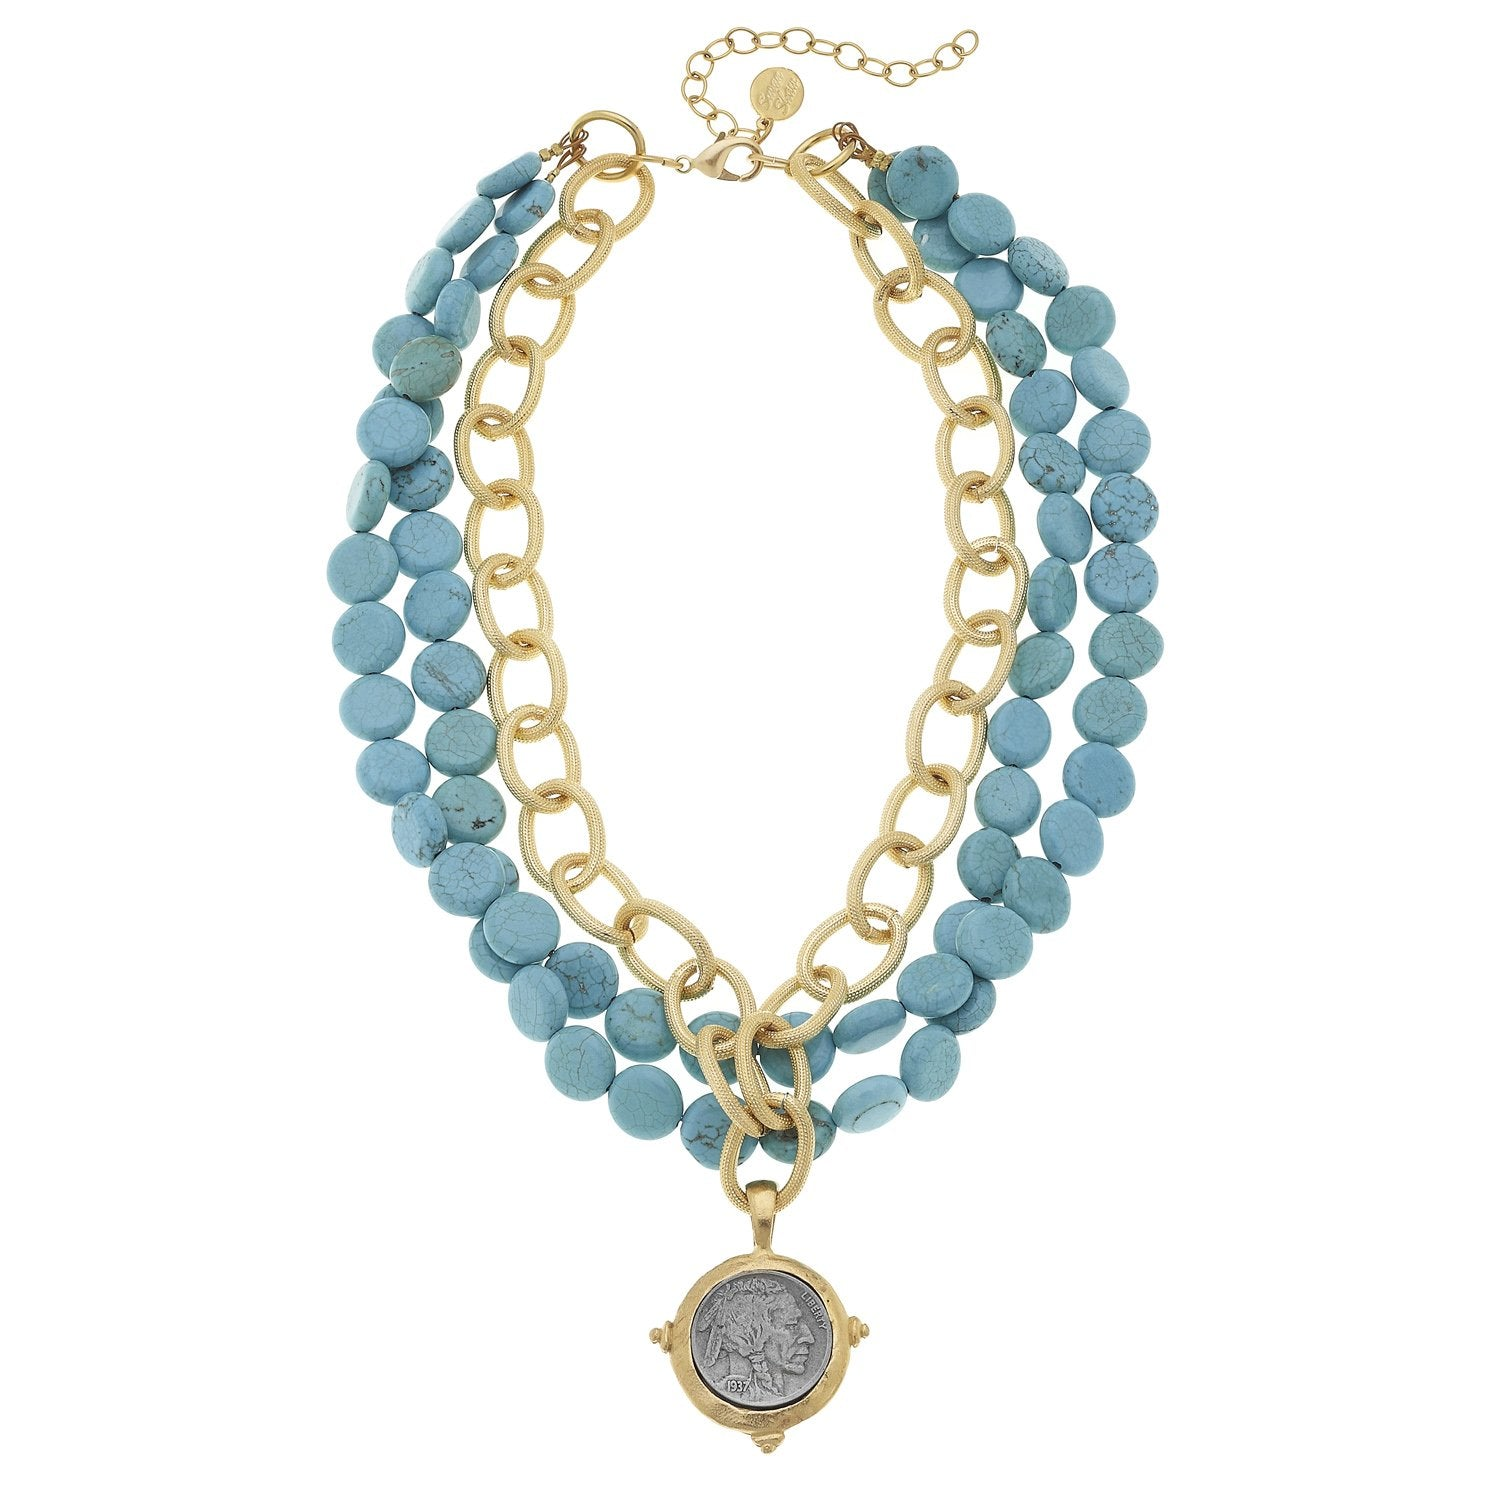 Susan Shaw Indian Coin on Genuine Multi Strand Turquoise Necklace, Gold